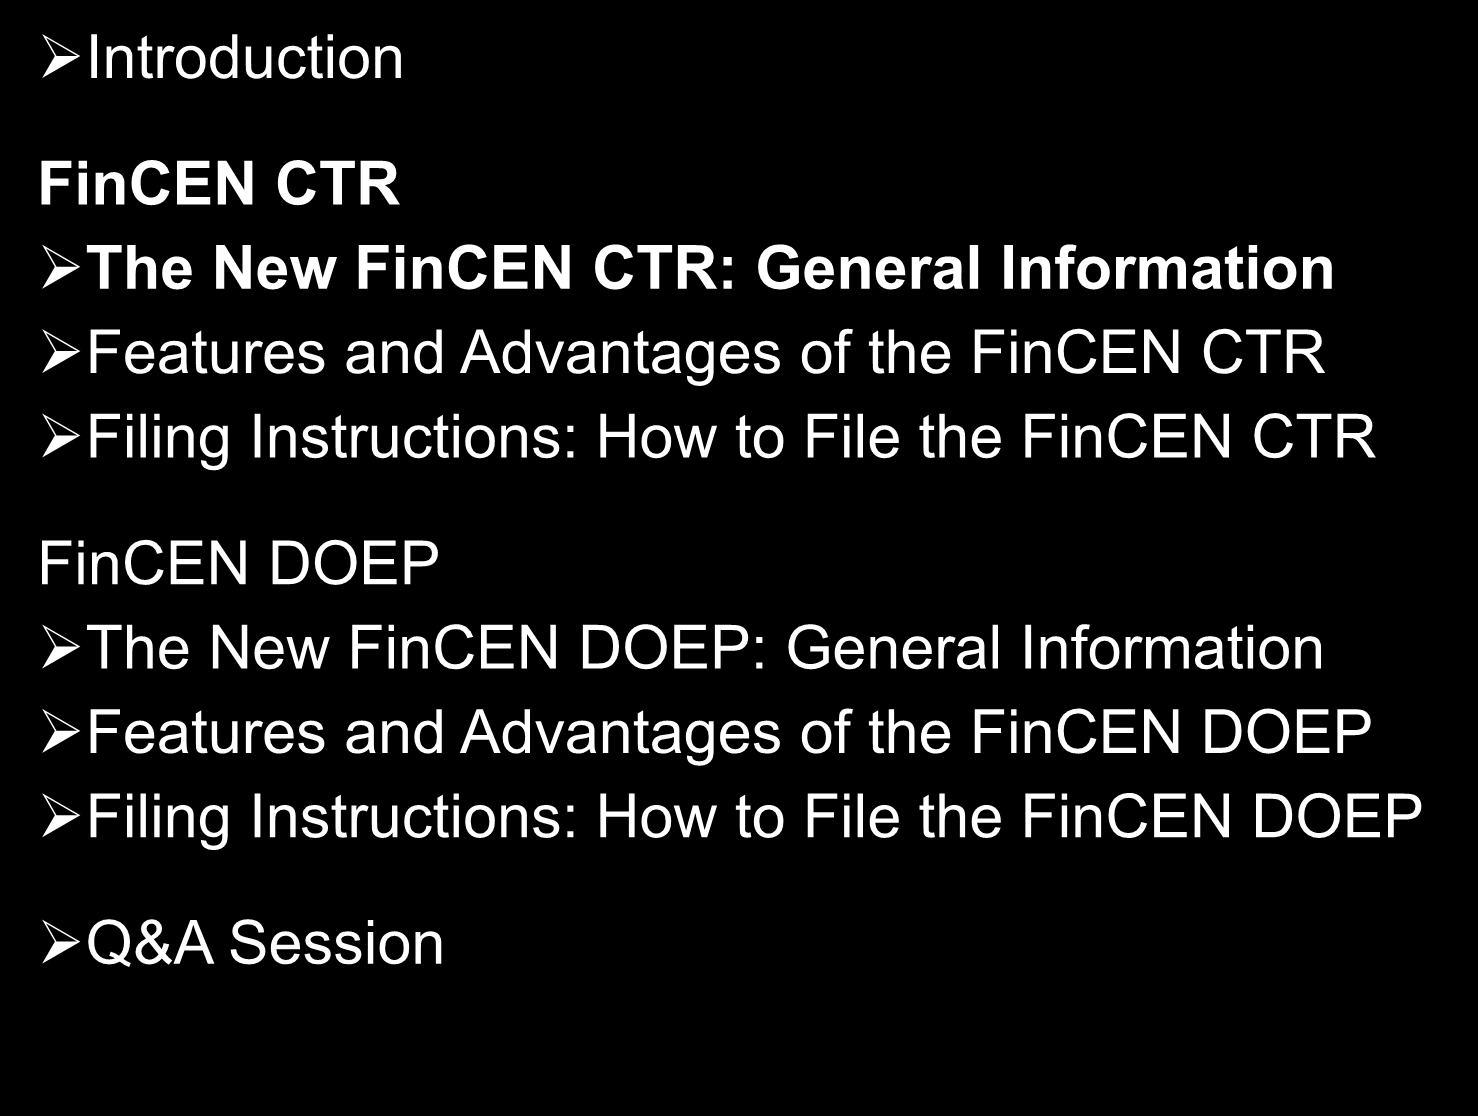 Agenda Introduction FinCEN CTR The New FinCEN CTR: General Information Features and Advantages of the FinCEN CTR Filing Instructions: How to File the FinCEN